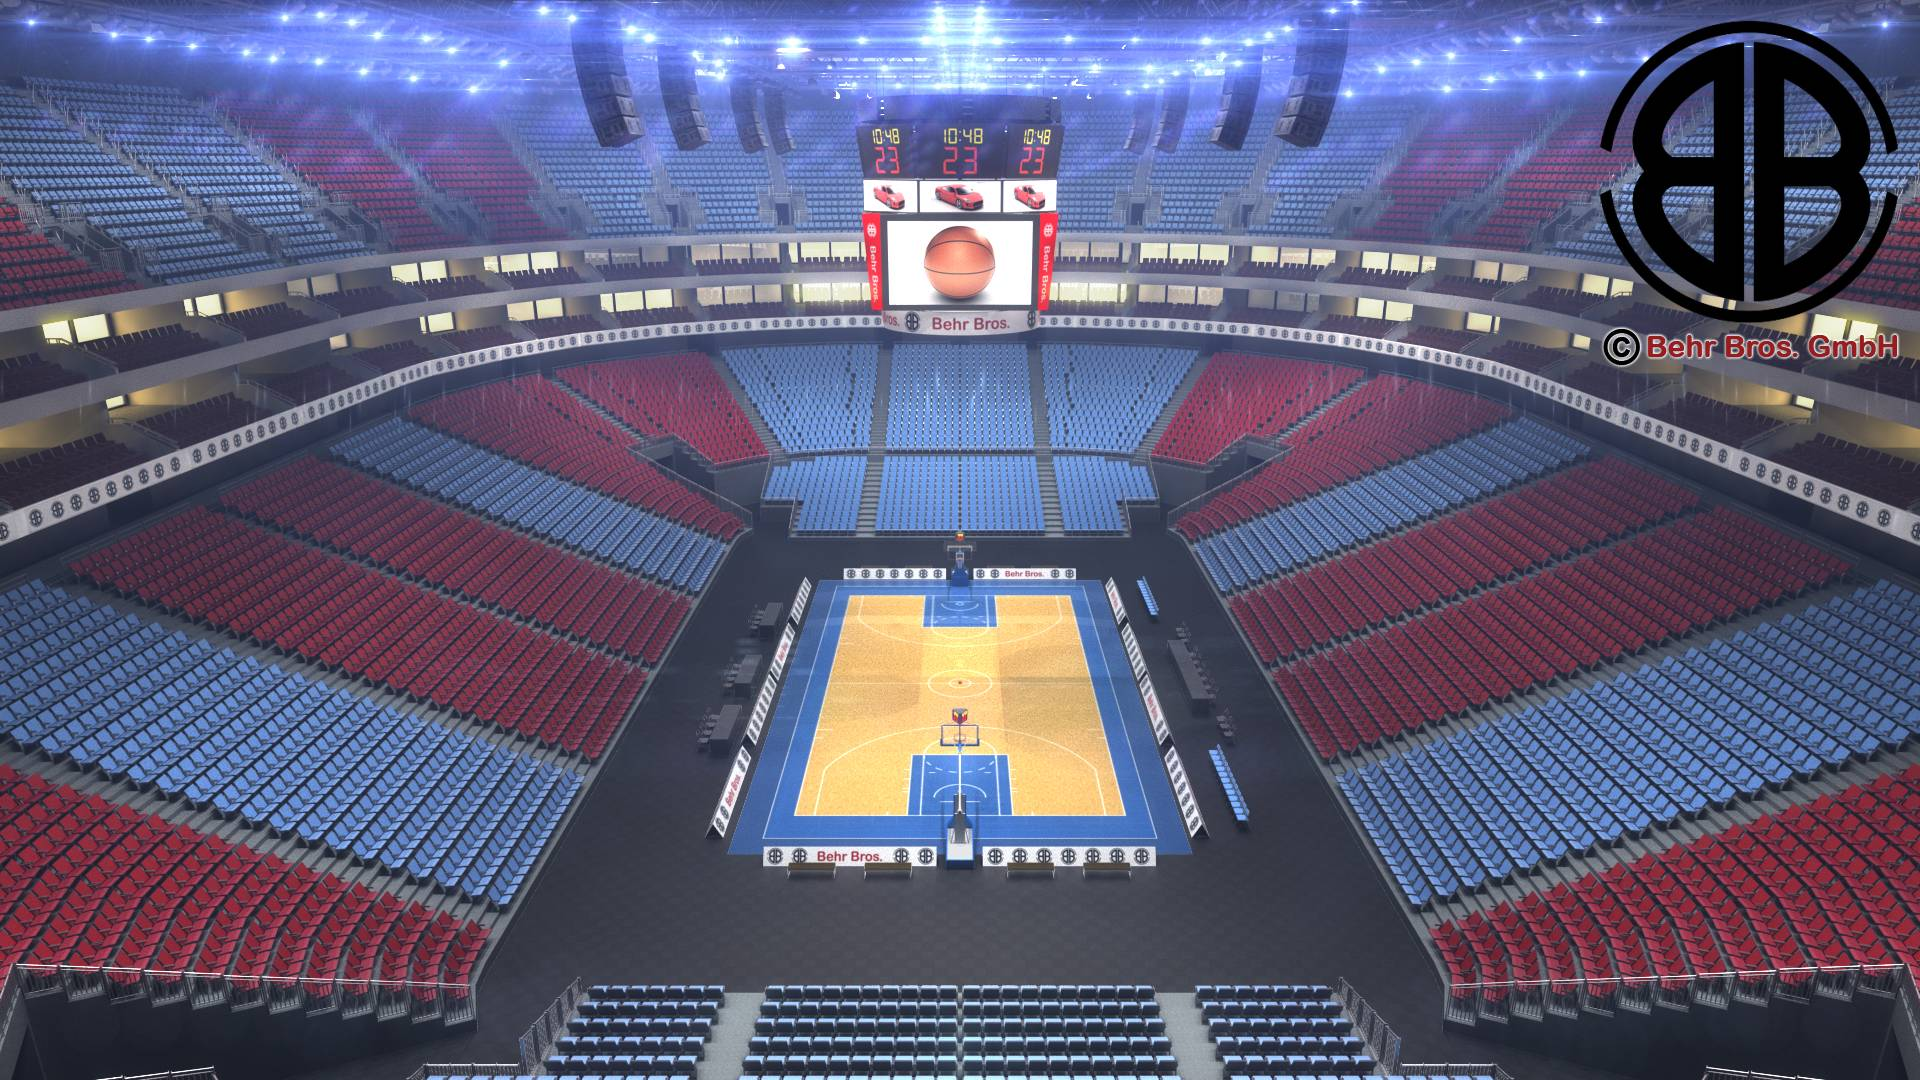 basketball arena v2 3d model 3ds max fbx c4d lwo ma mb obj 222363